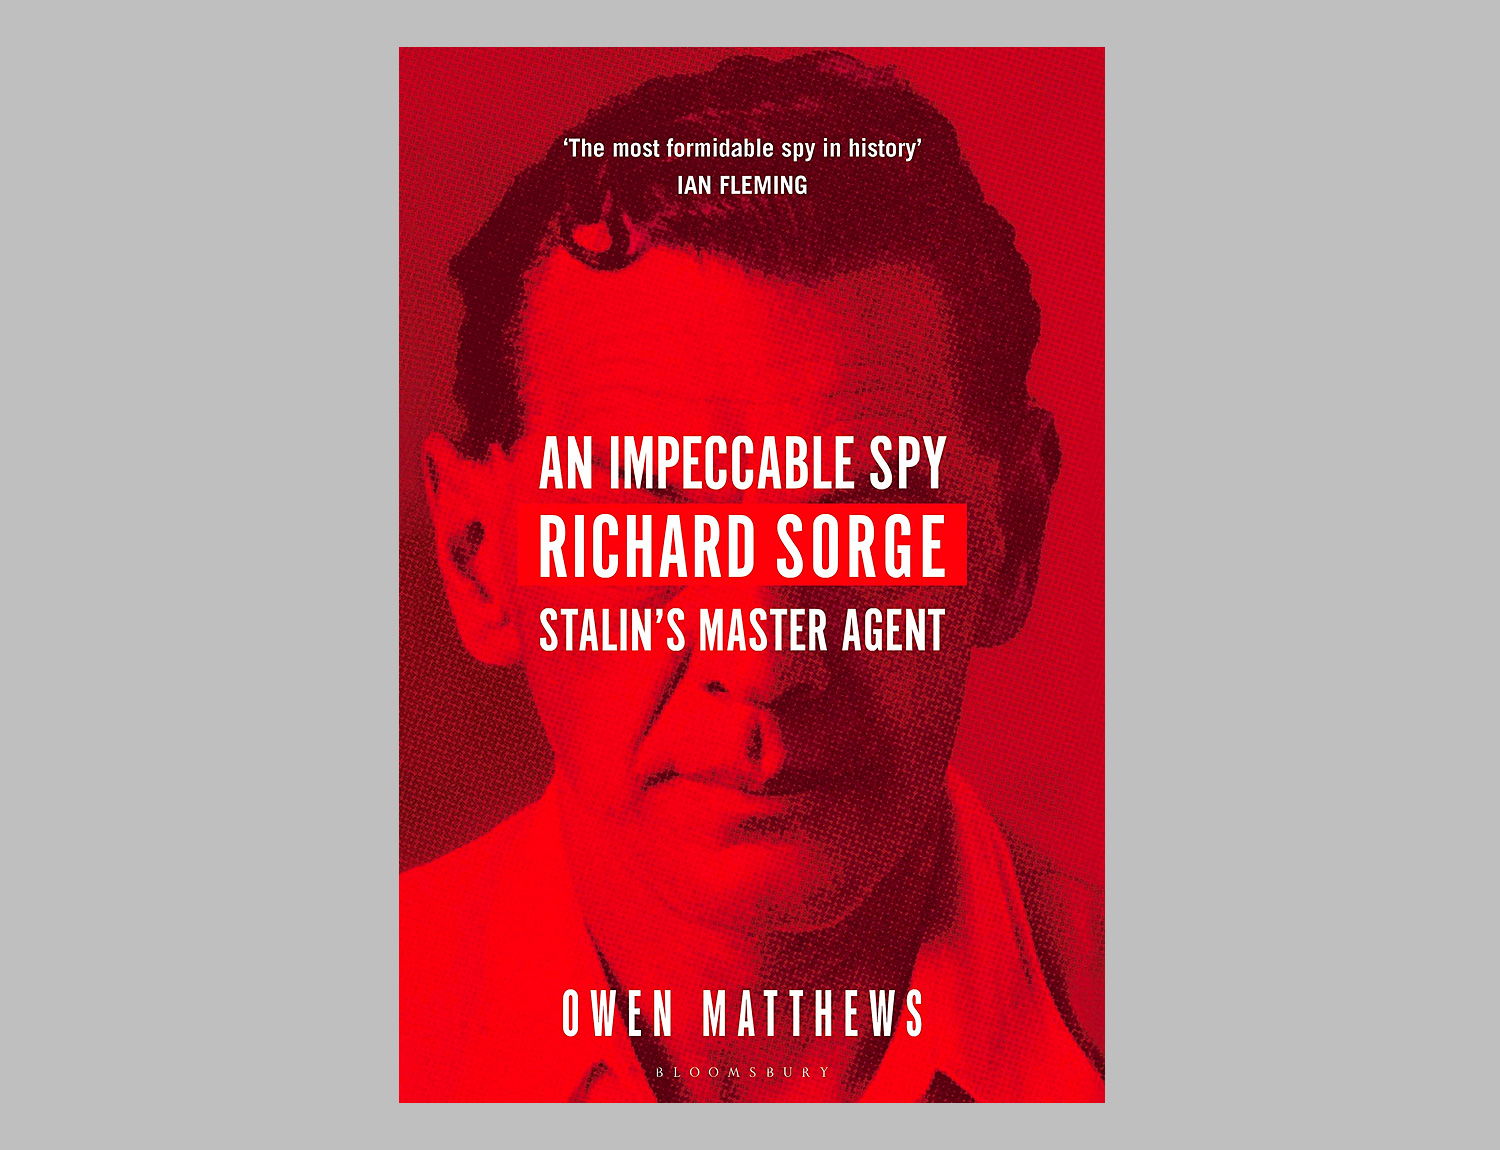 An Impeccable Spy: Richard Sorge, Stalin's Master Agent at werd.com